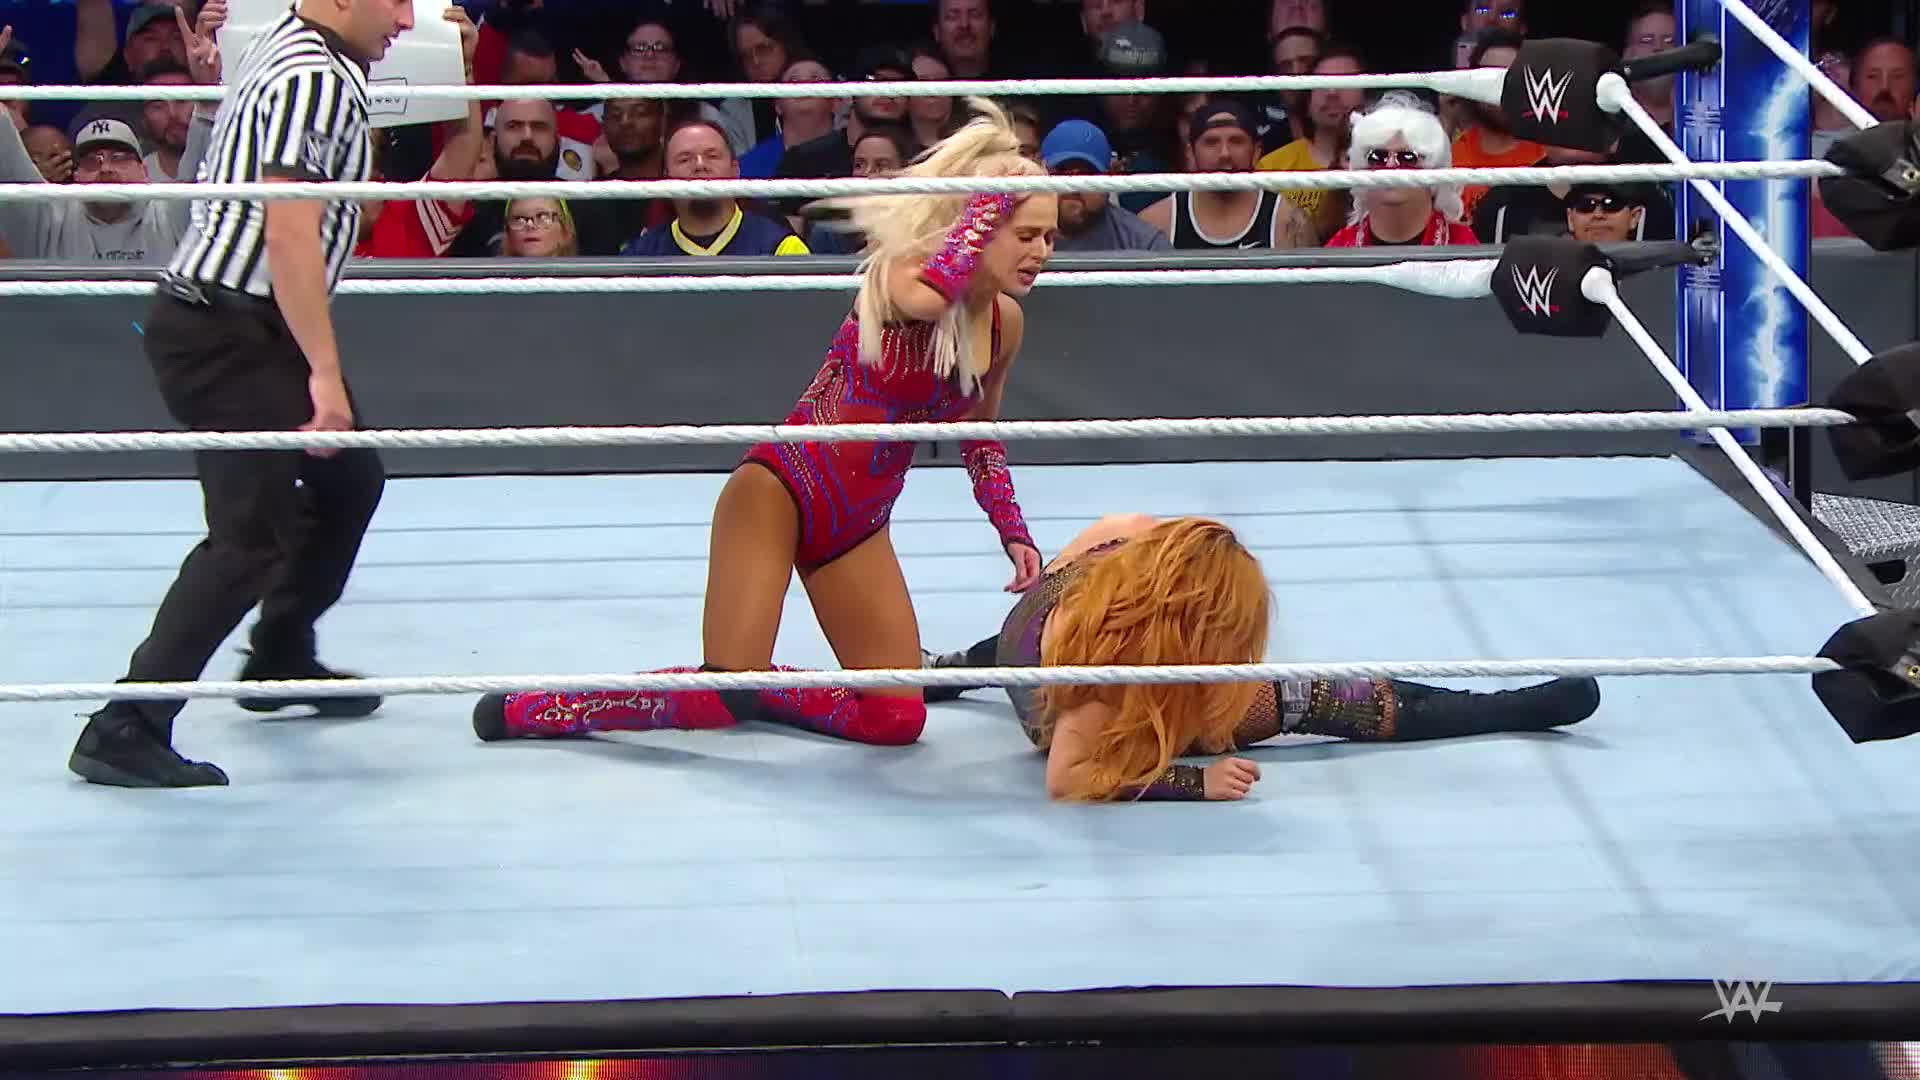 SquaredCircle, wrestling, Becky Lynch GIFs